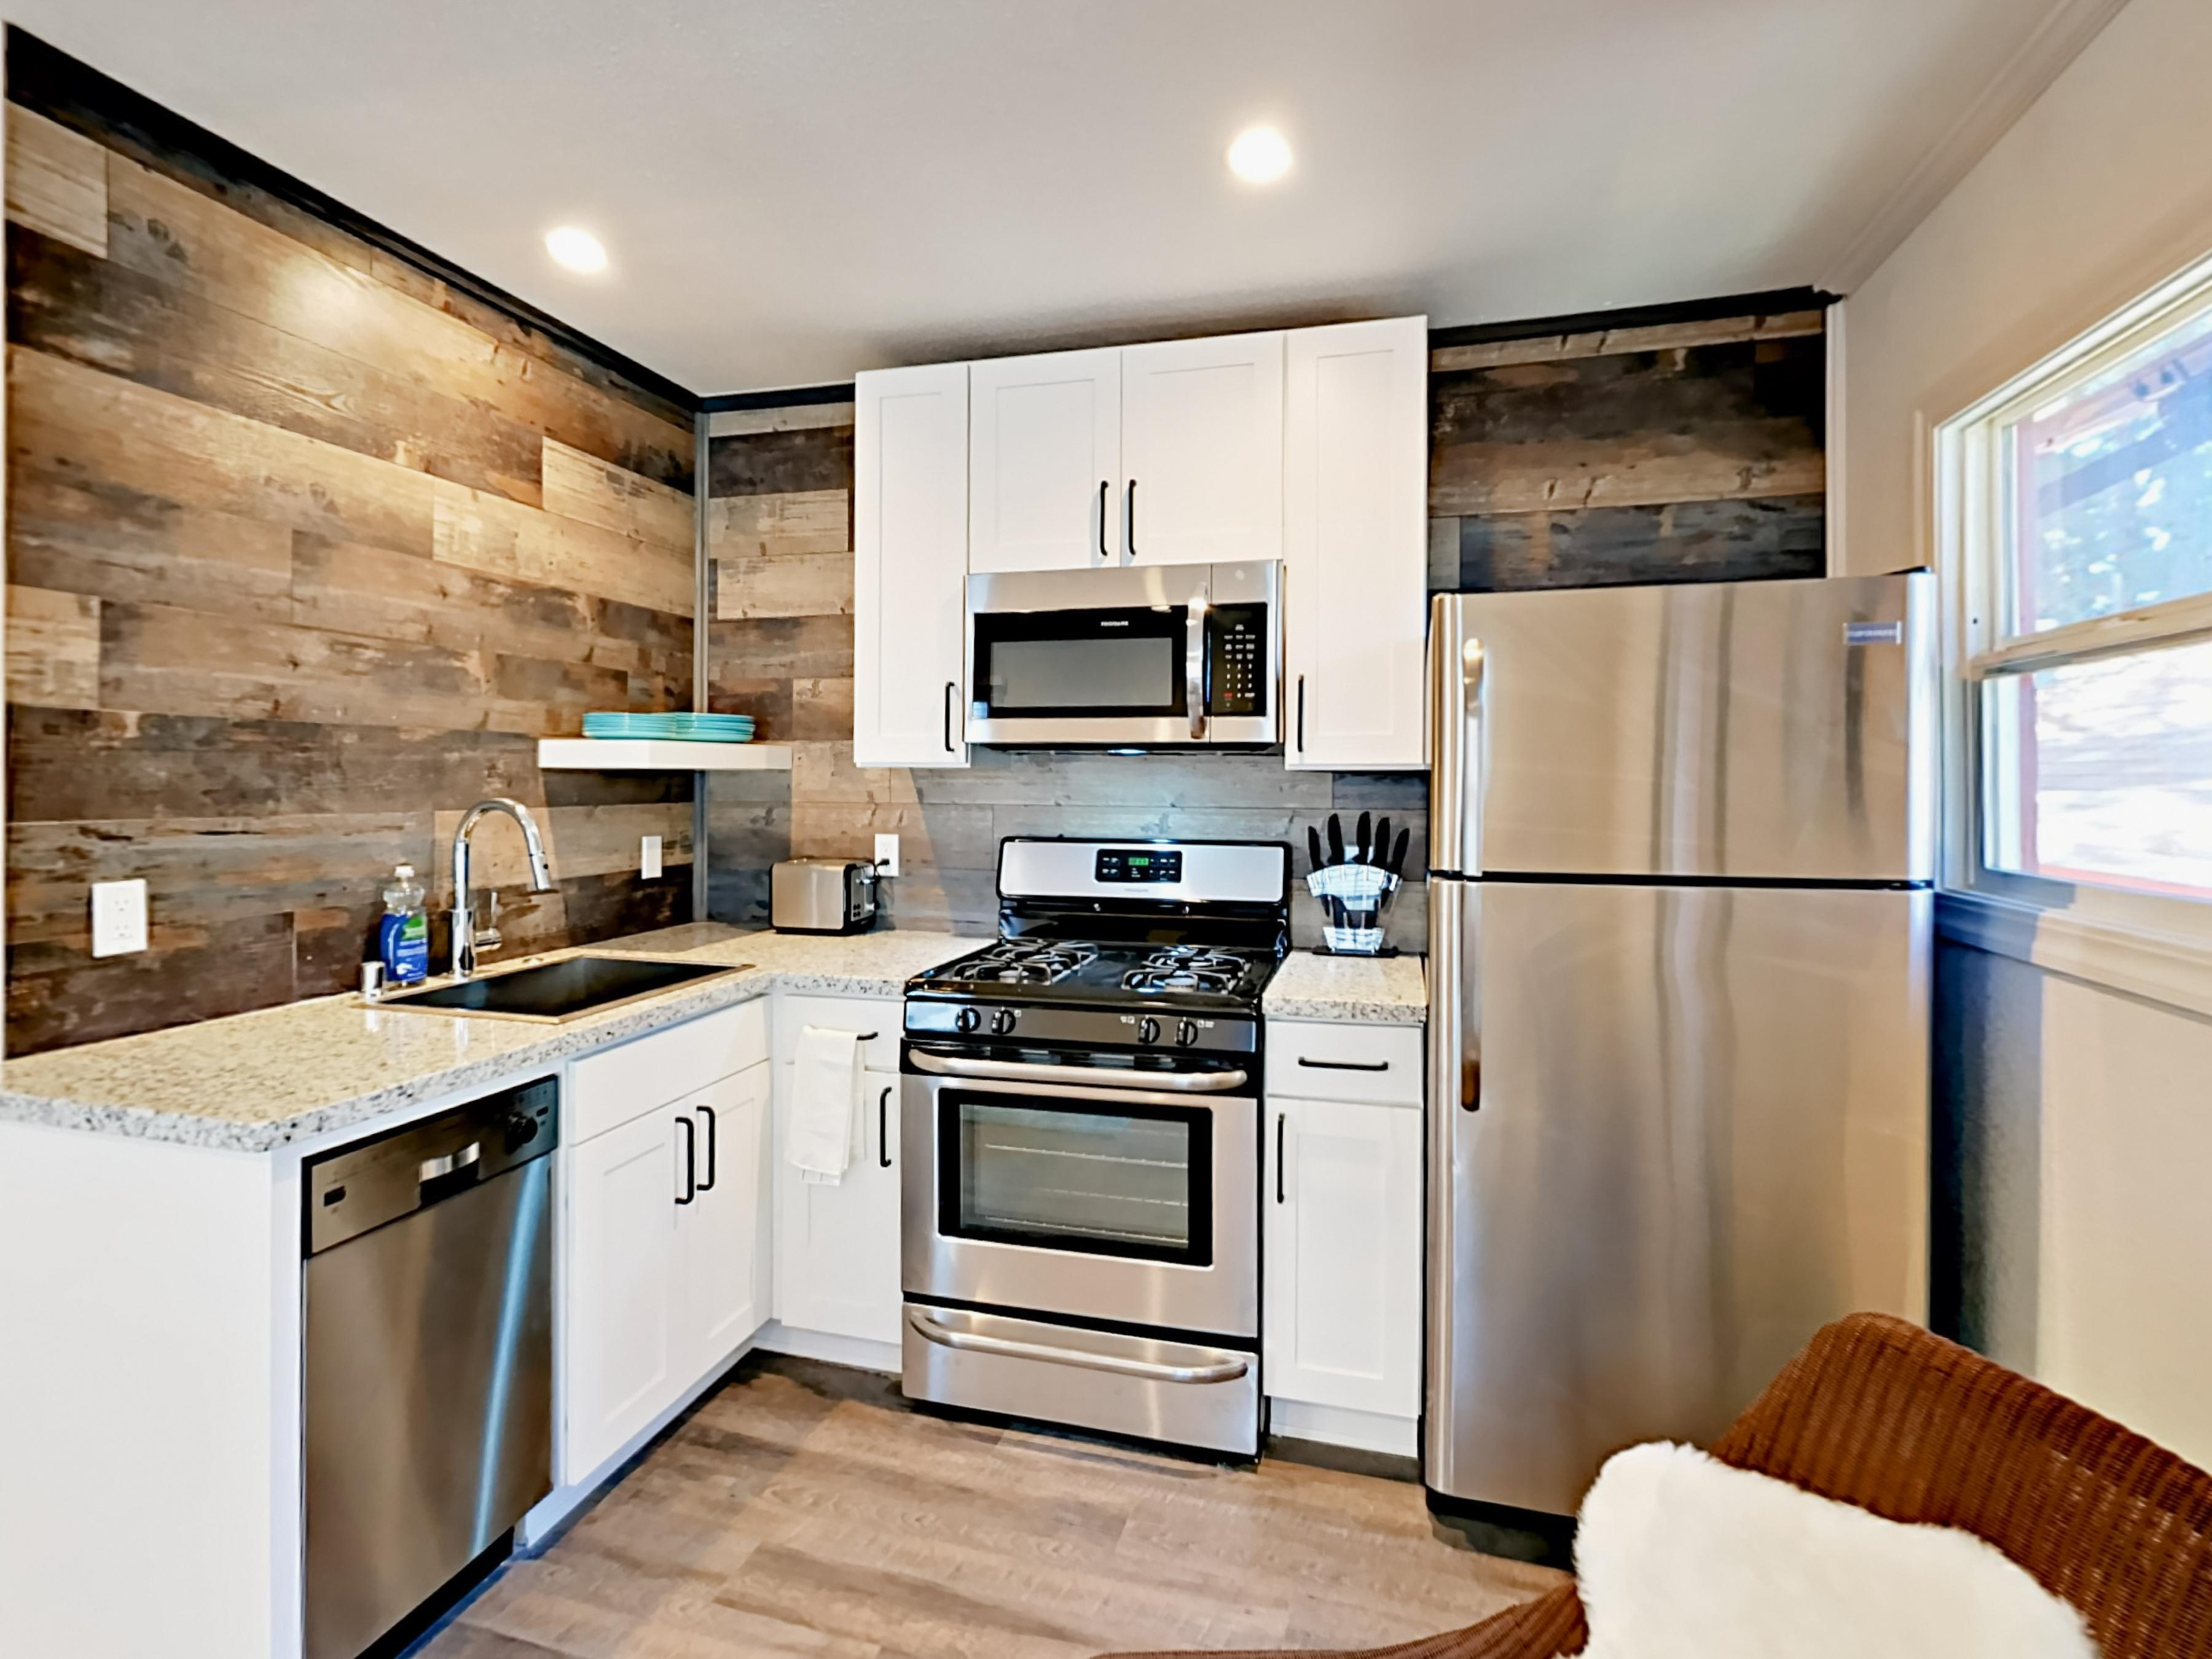 Prepare home-cooked meals in the well-equipped kitchen with granite countertops and updated stainless steel appliances.